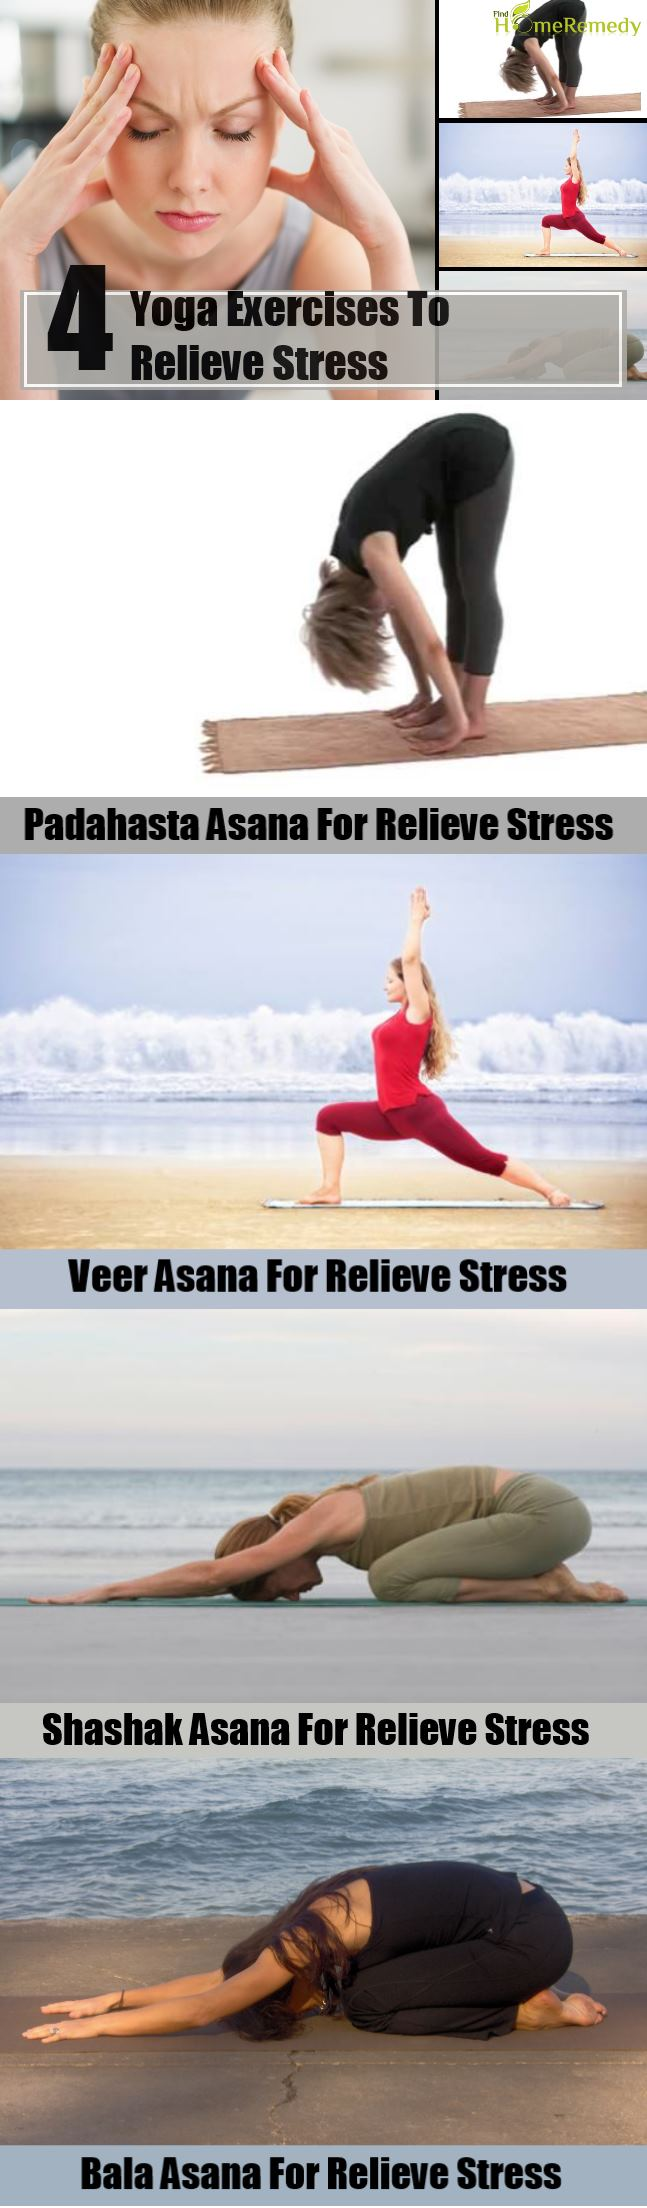 4 Yoga Exercises To Relieve Stress